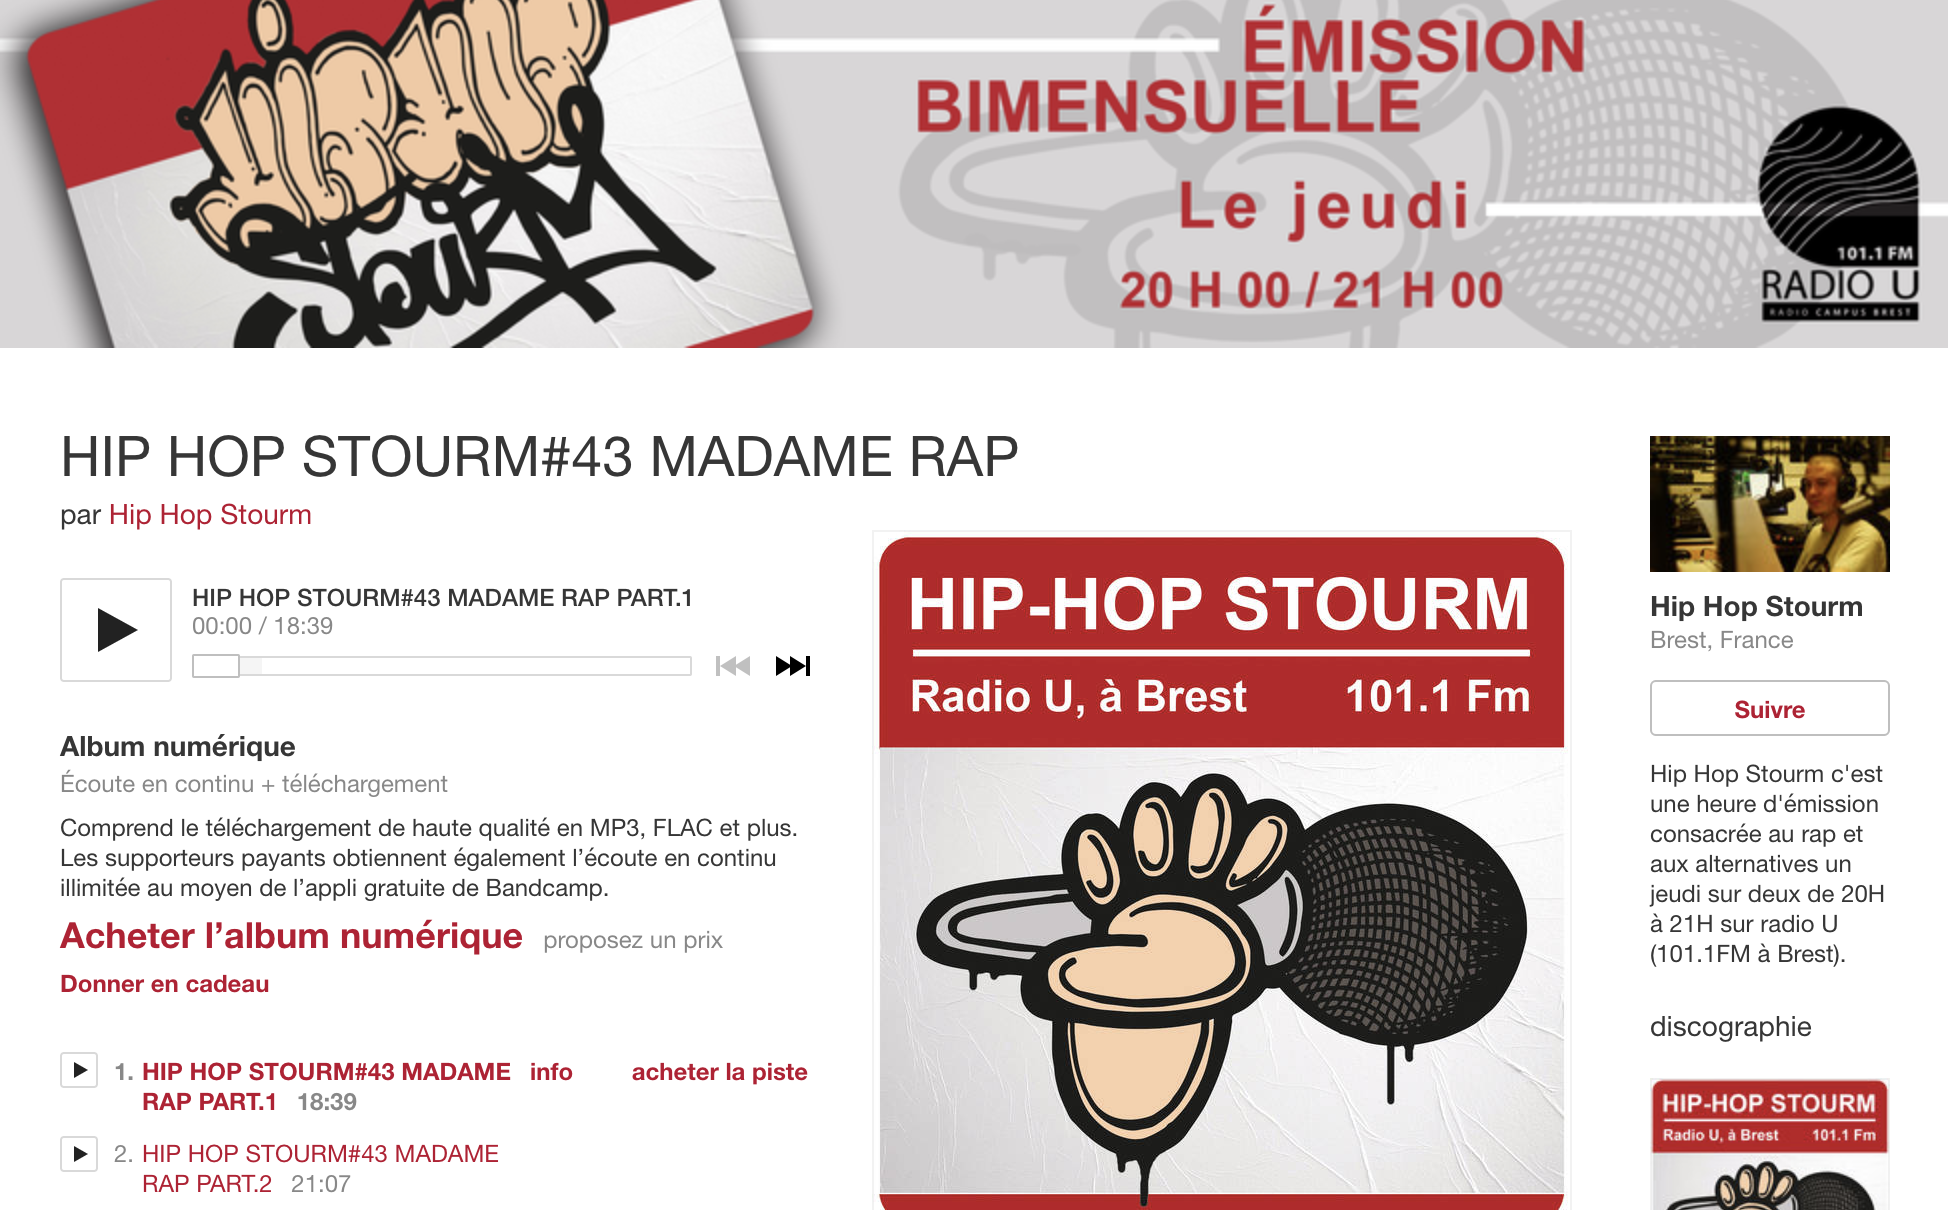 MR-Hip hop stourm